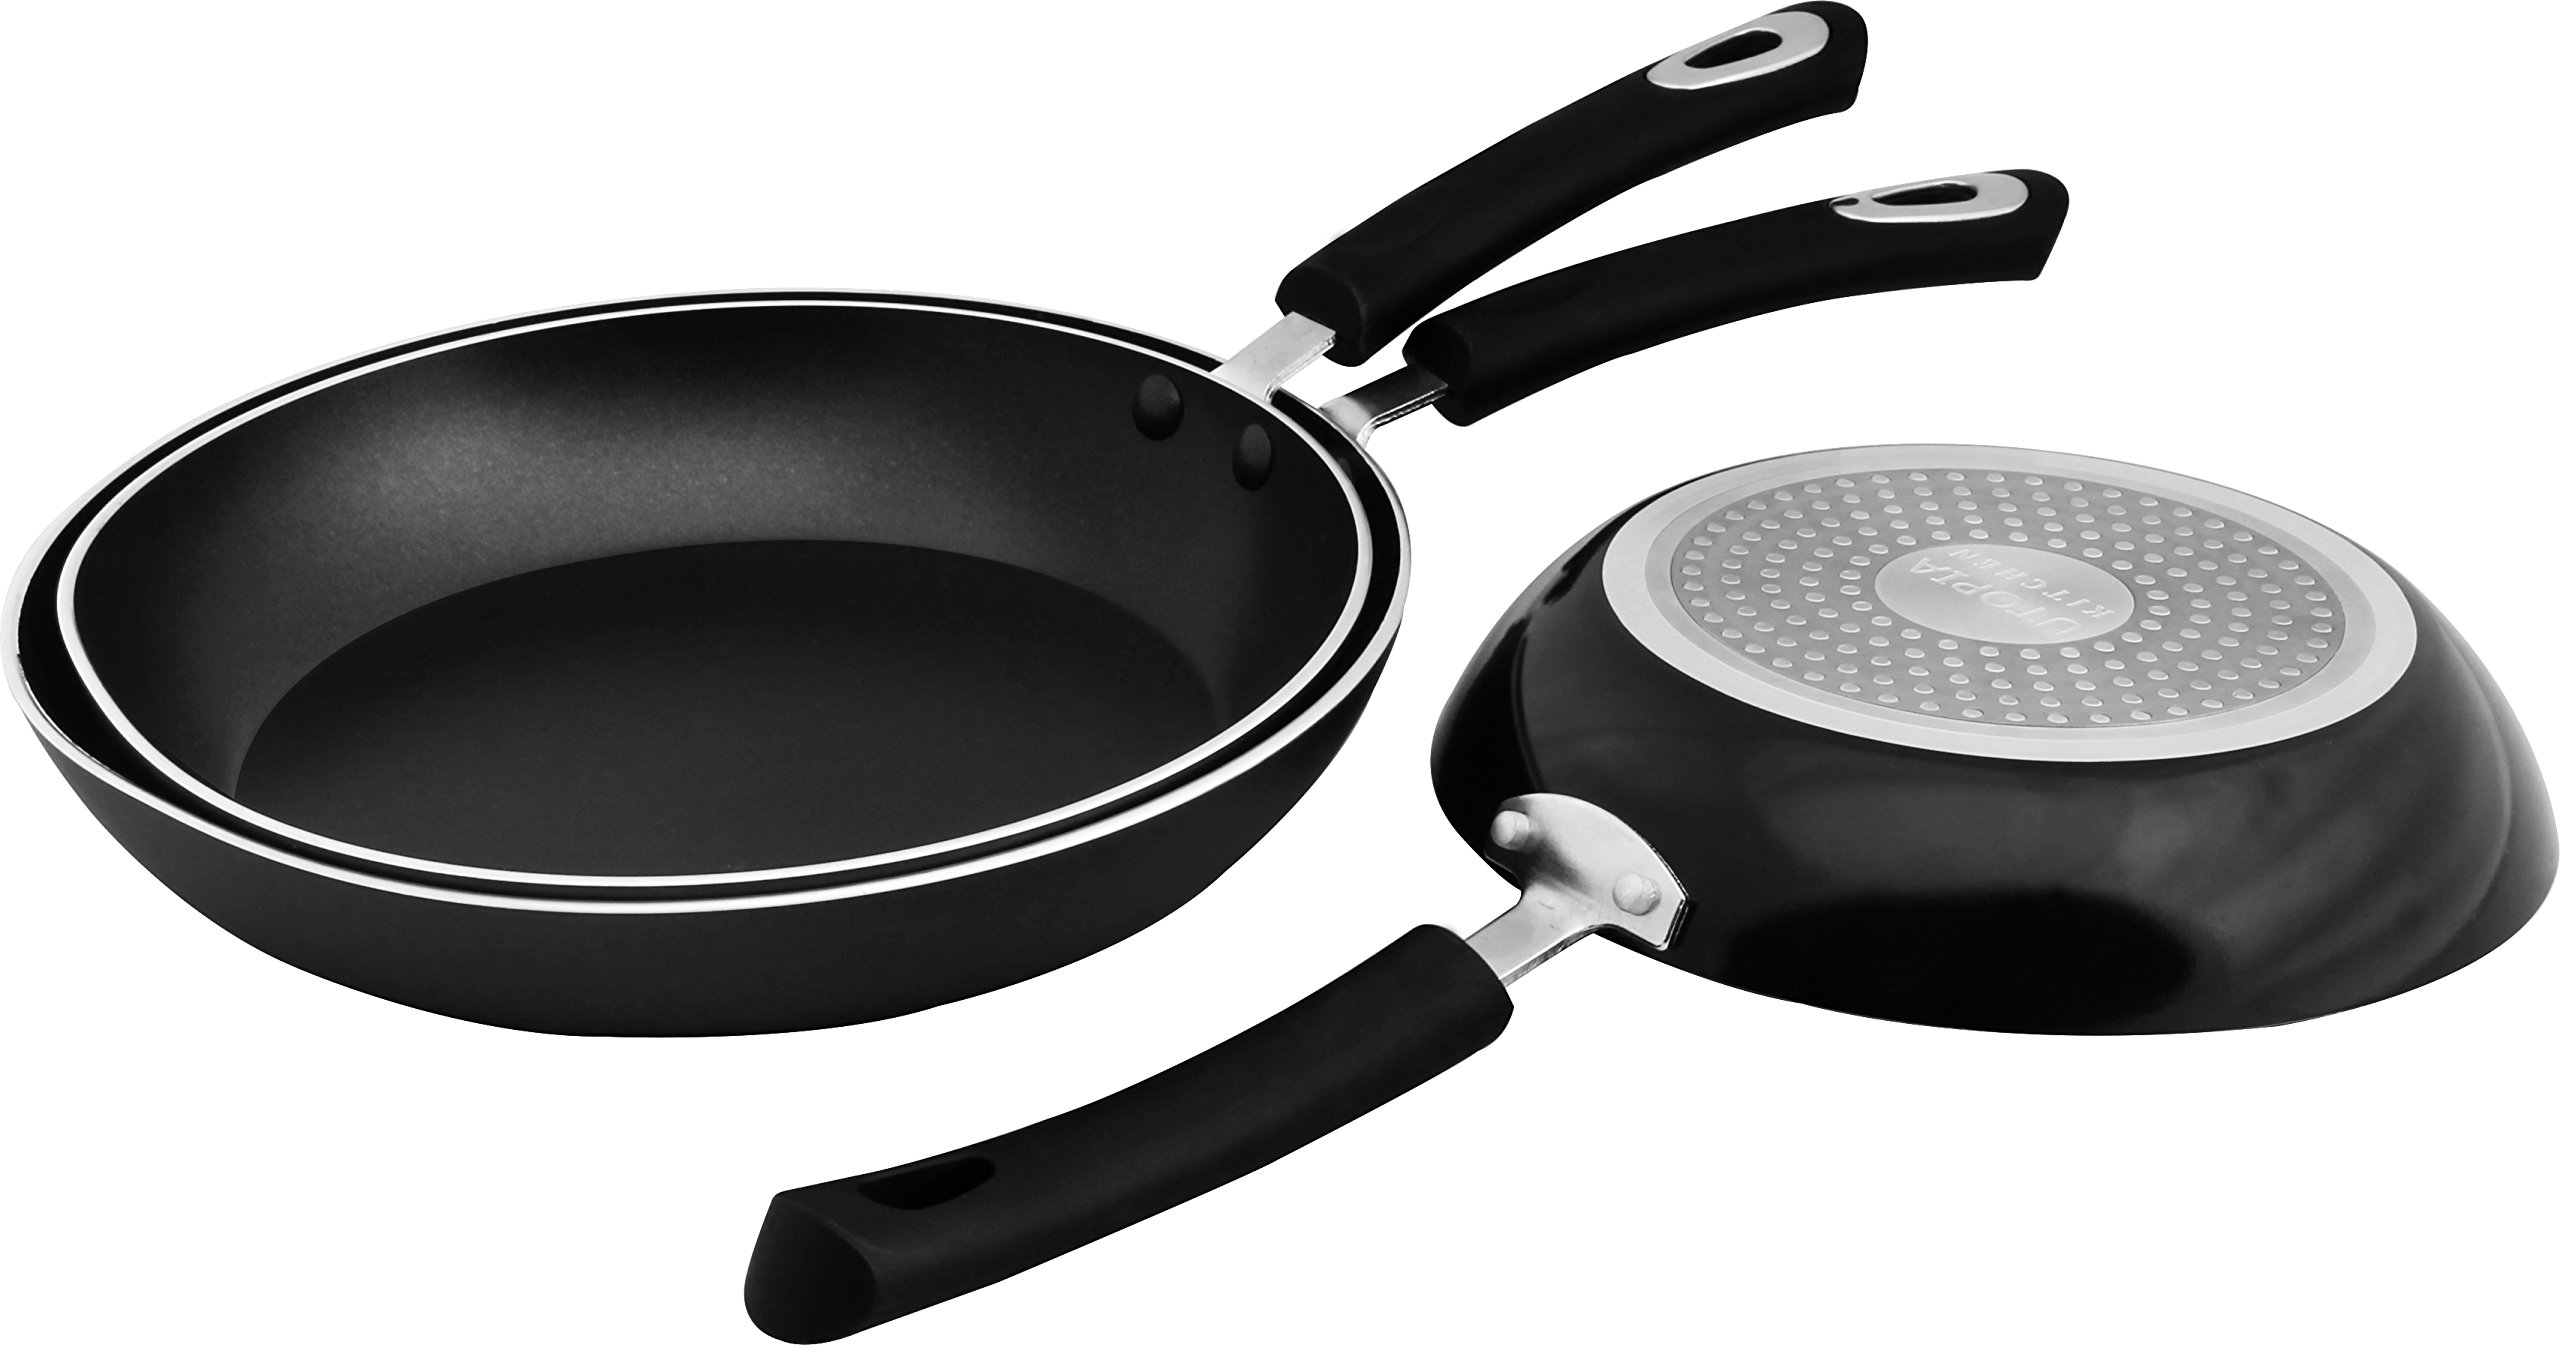 Utopia Kitchen Nonstick Frying Pan Set - 3 Piece Induction Bottom - 8 Inch, 9.5 Inch and 11 Inch by Utopia Kitchen (Image #5)